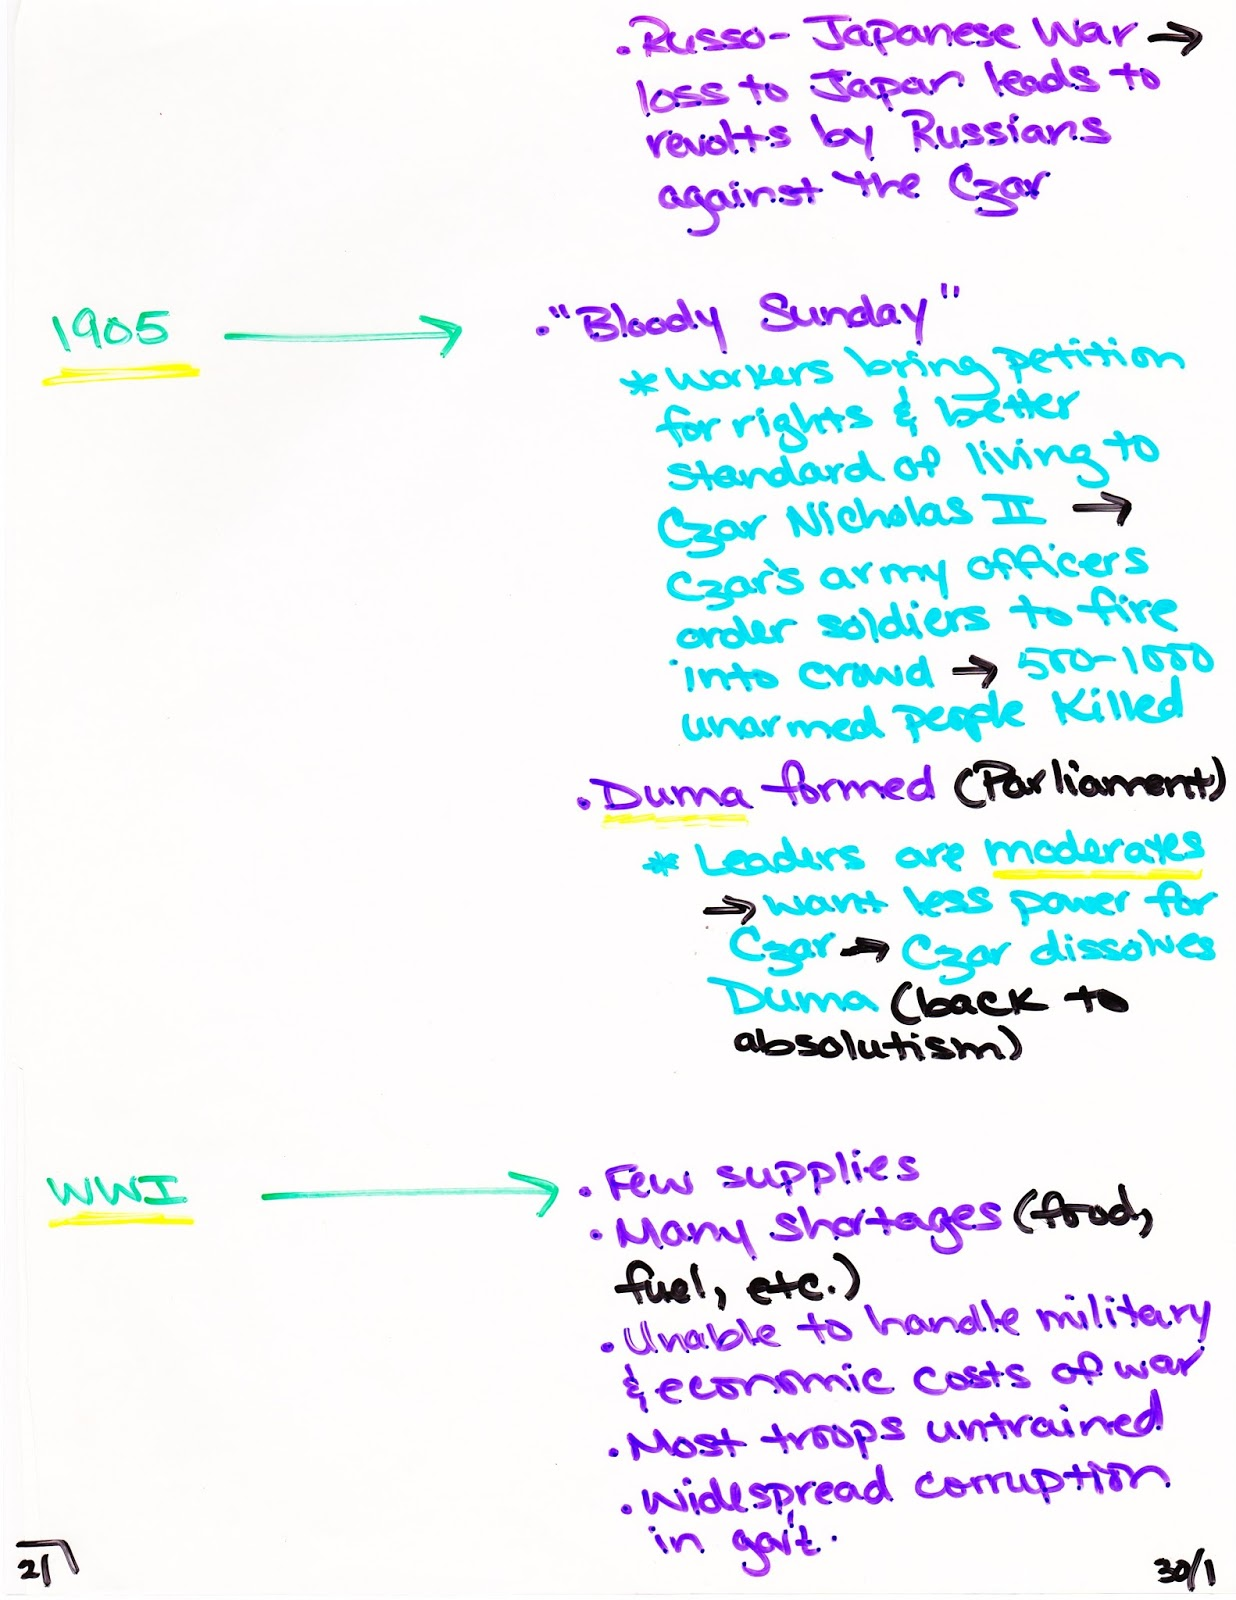 globalization notes Globalization notes what factors contributed to economic globalization during the 20th century in what ways has economic globalization linked the world's peoples.